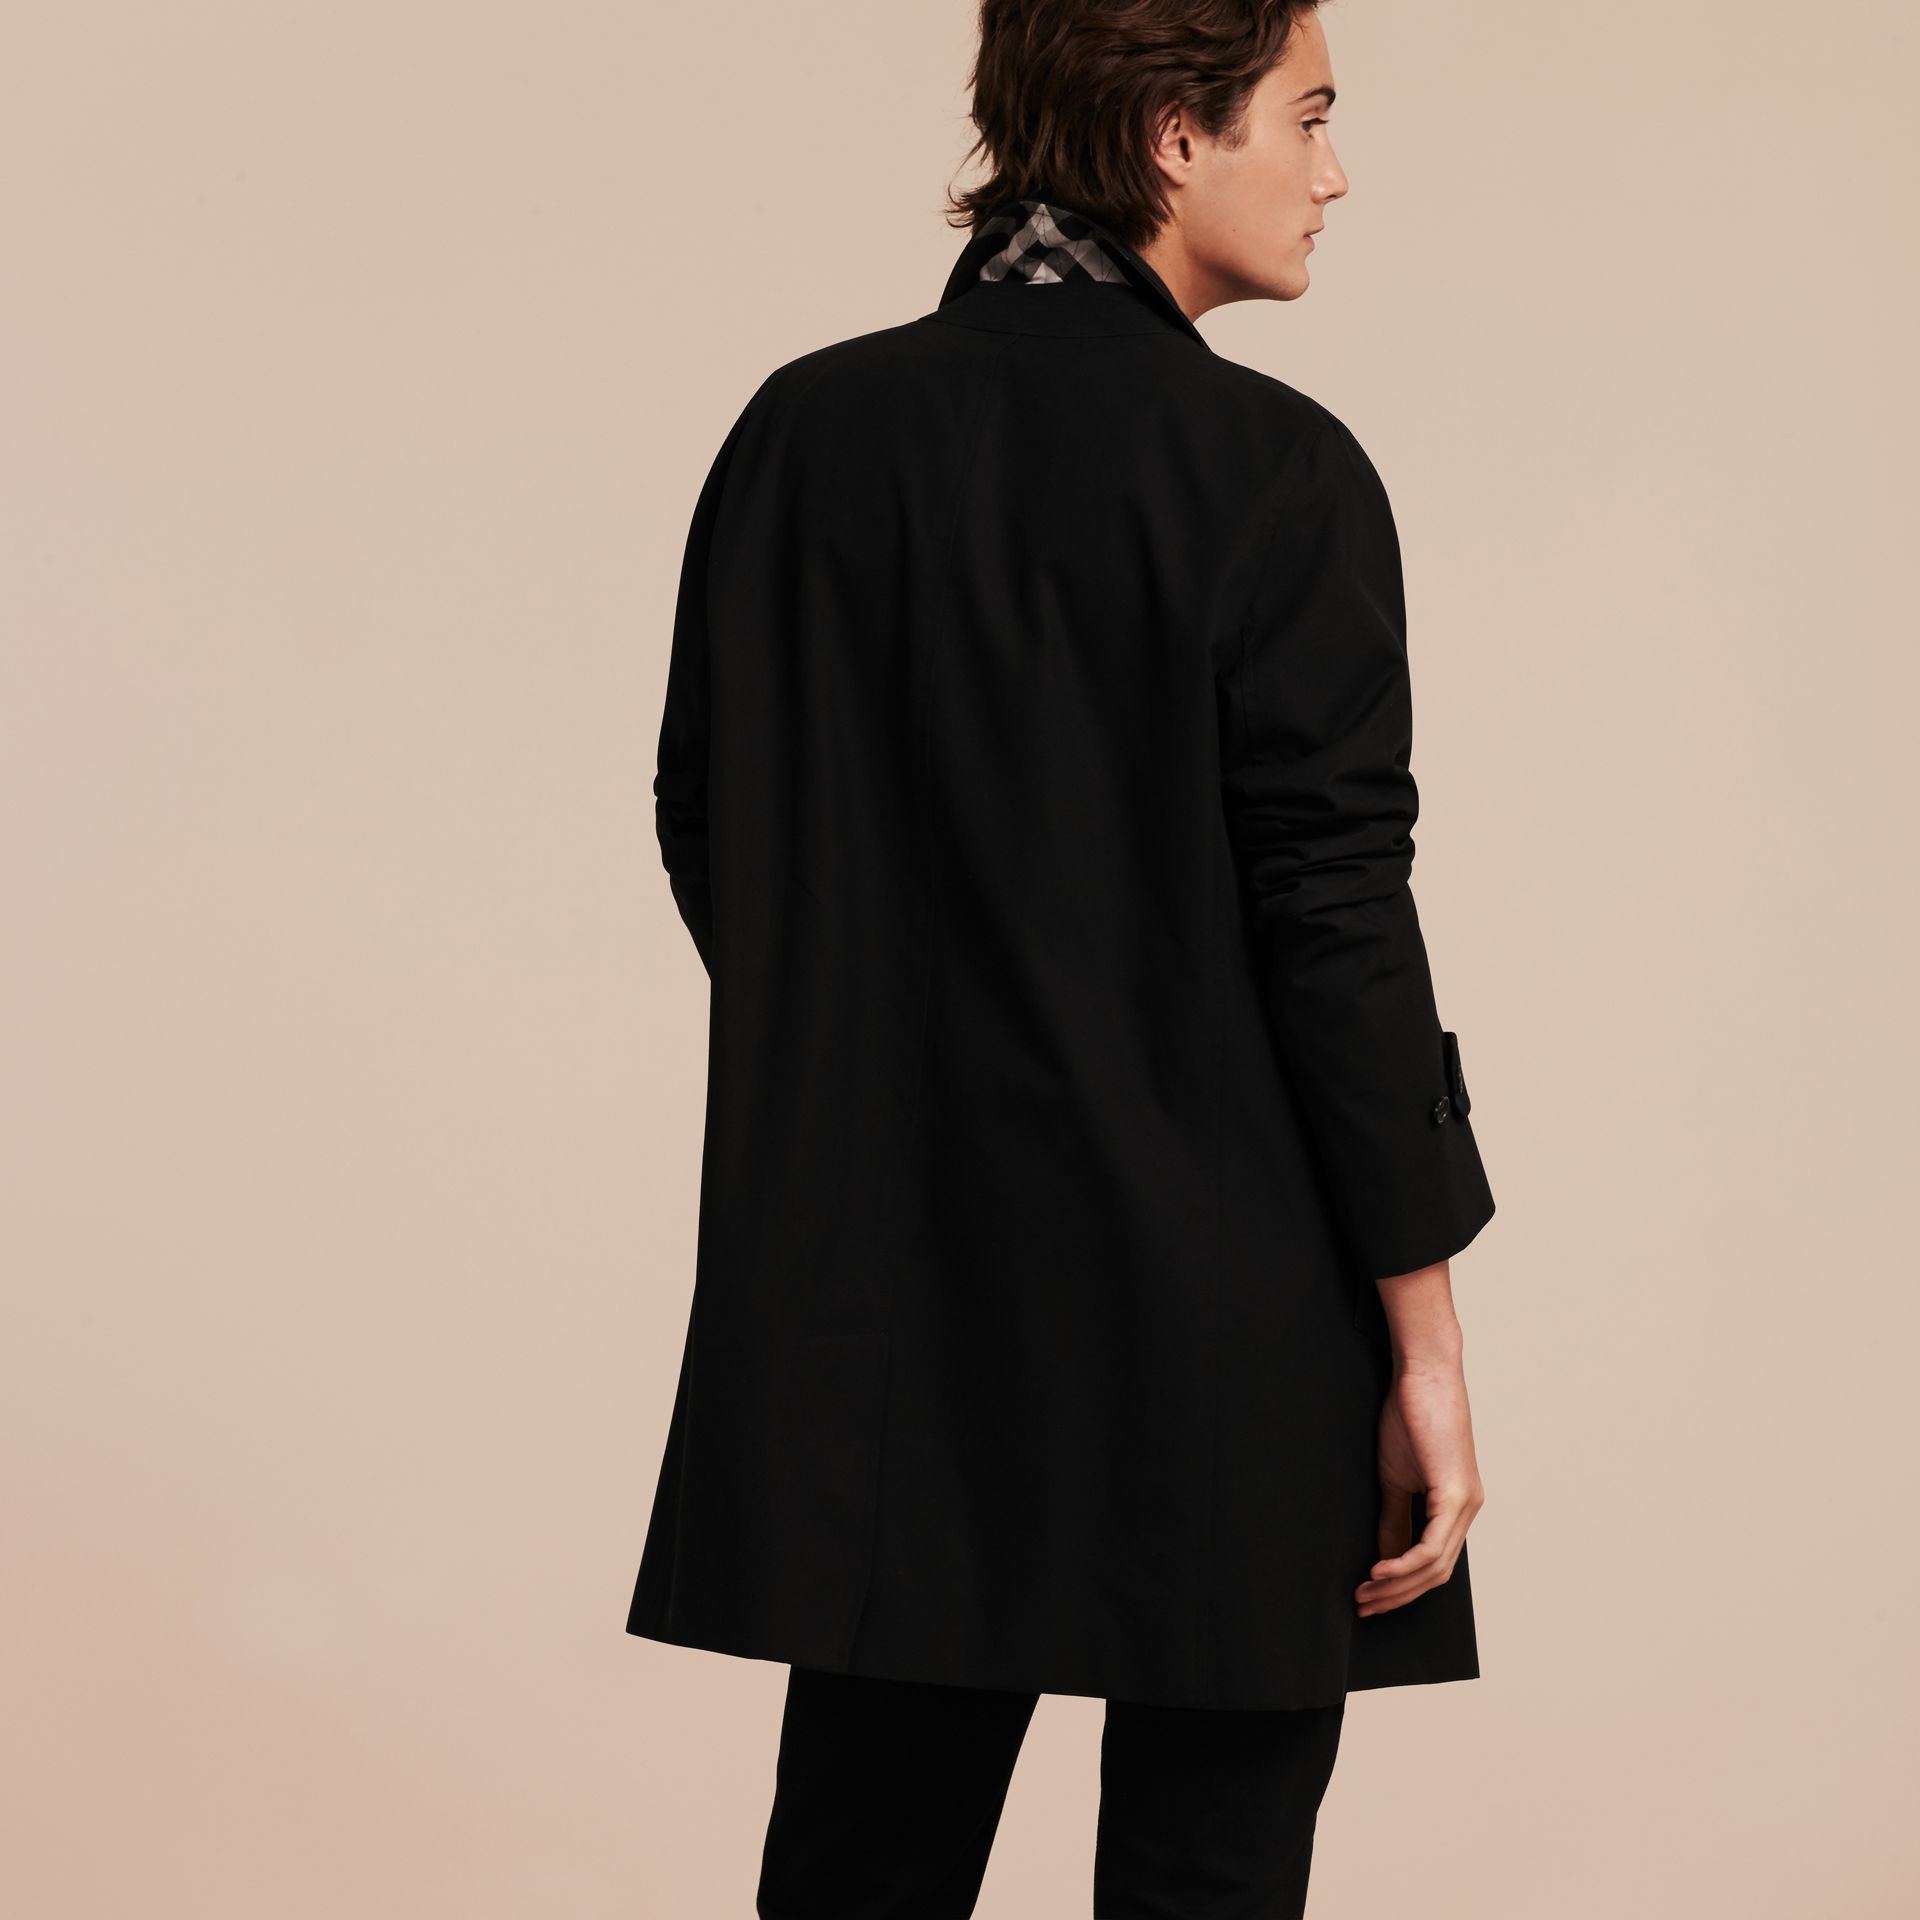 Black Cotton Gabardine Car Coat Black - gallery image 3